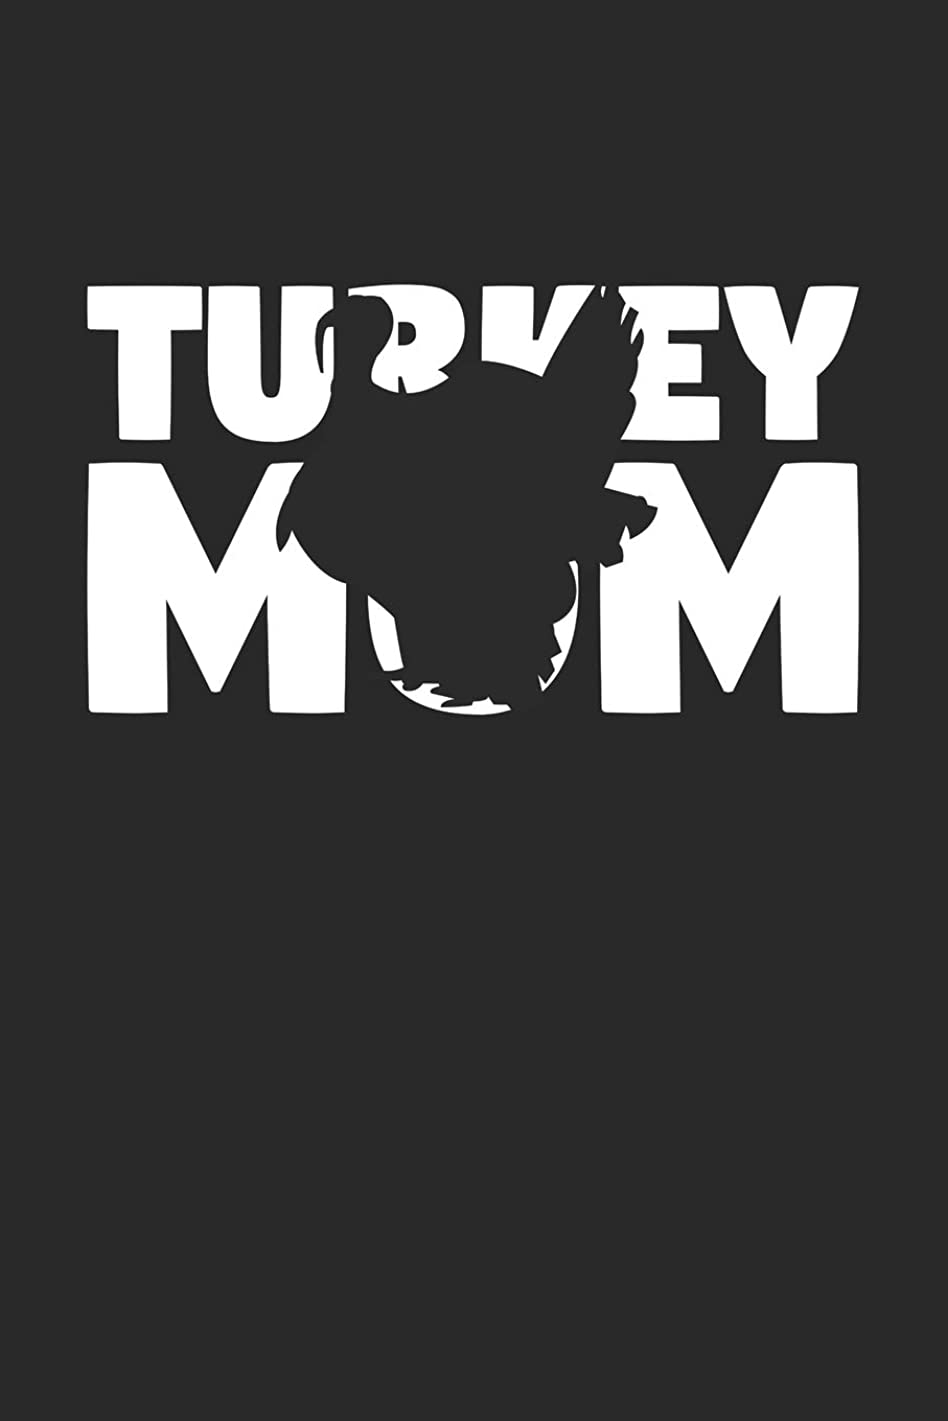 Turkey Mom Turkey Notebook - Gift for Animal Lovers - Turkey Journal: Medium College-Ruled Diary, 110 page, Lined, 6x9 (15.2 x 22.9 cm)